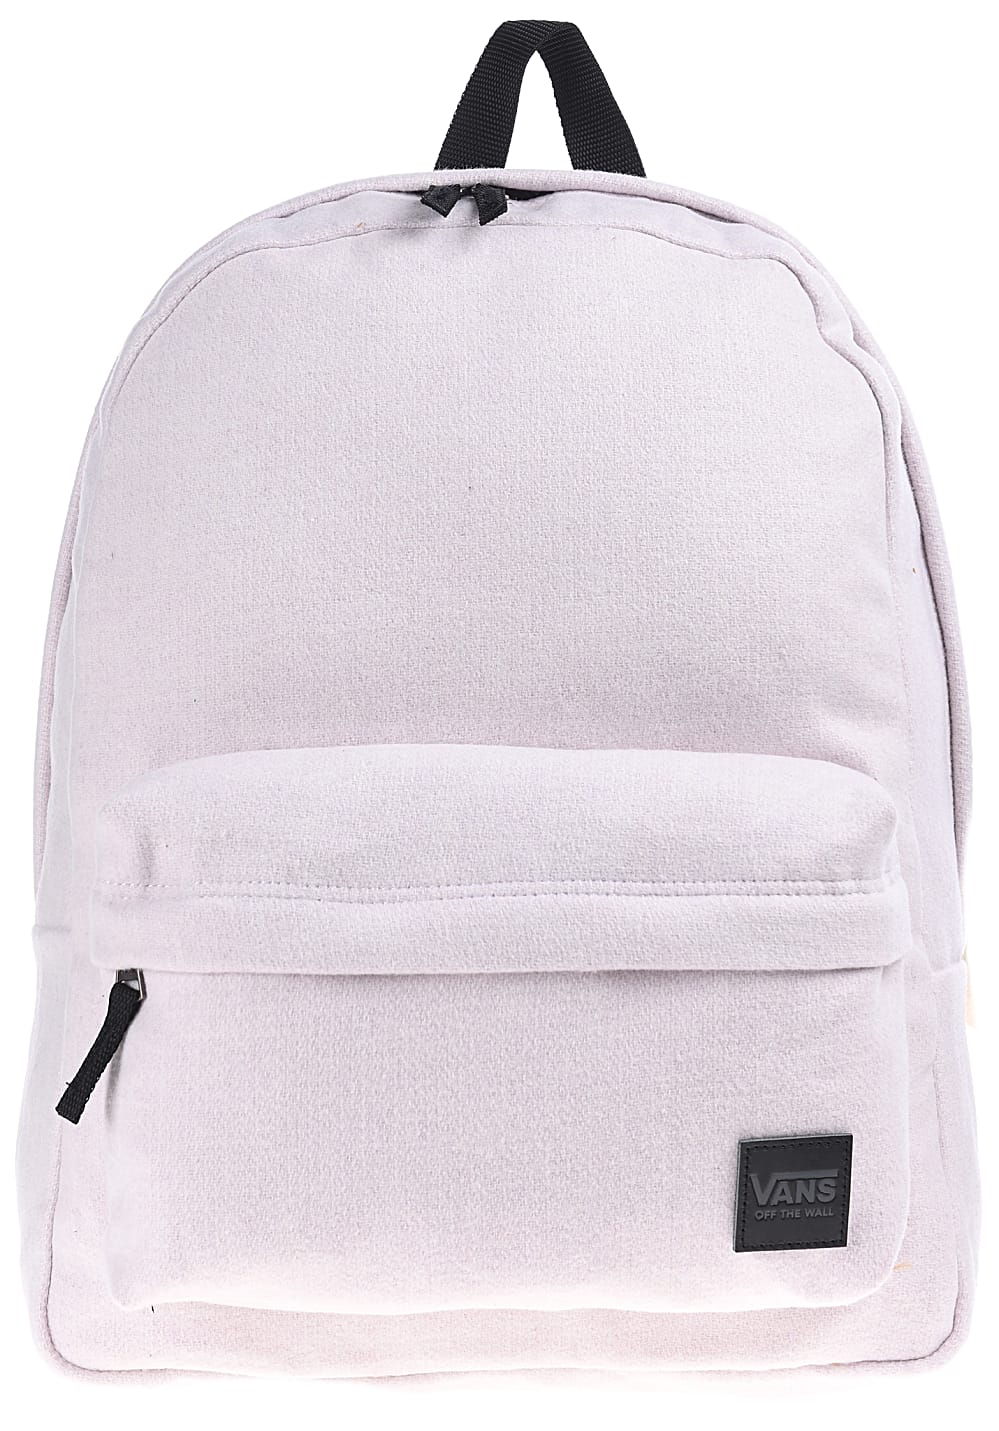 Vans Deana III - Backpack for Women - Purple - Planet Sports